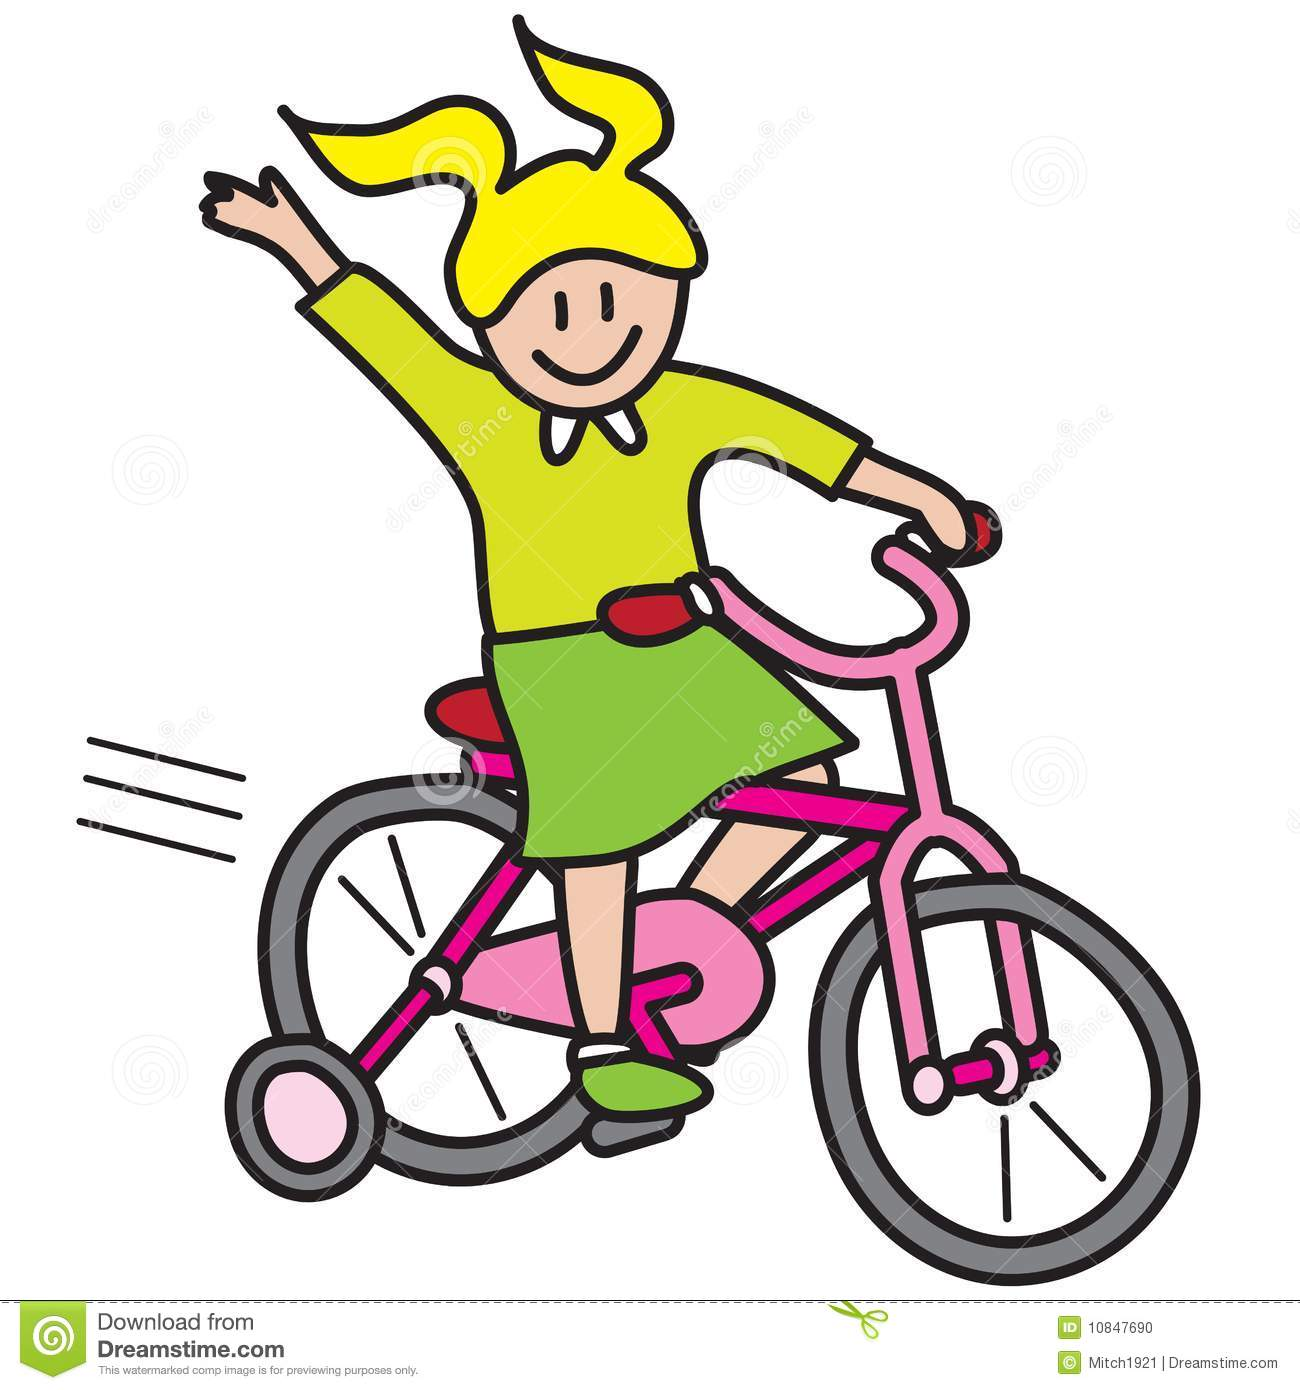 free clip art bike rider - photo #12